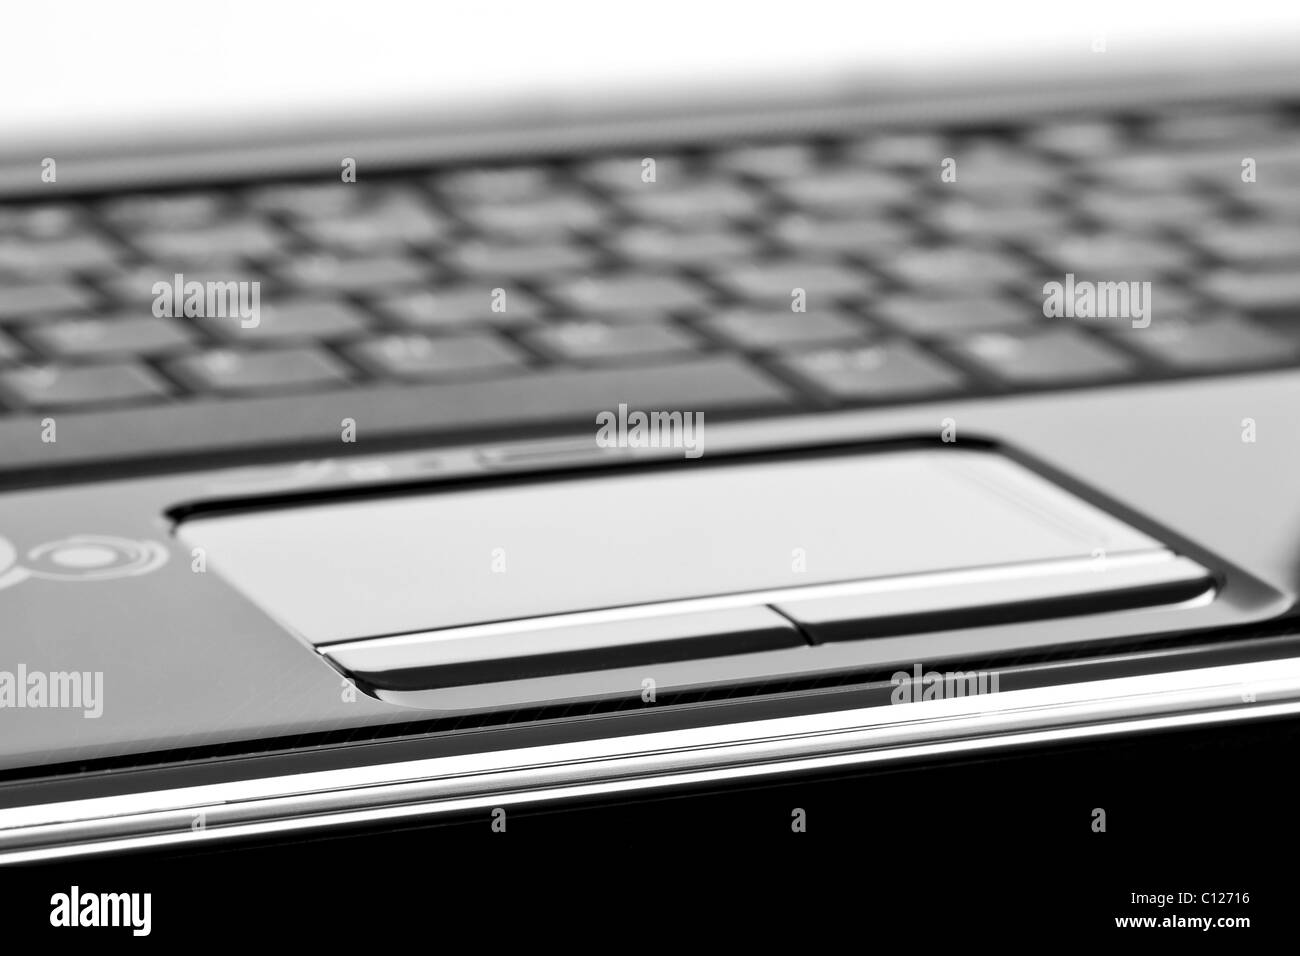 Touchpad d'ordinateur portable moderne Photo Stock